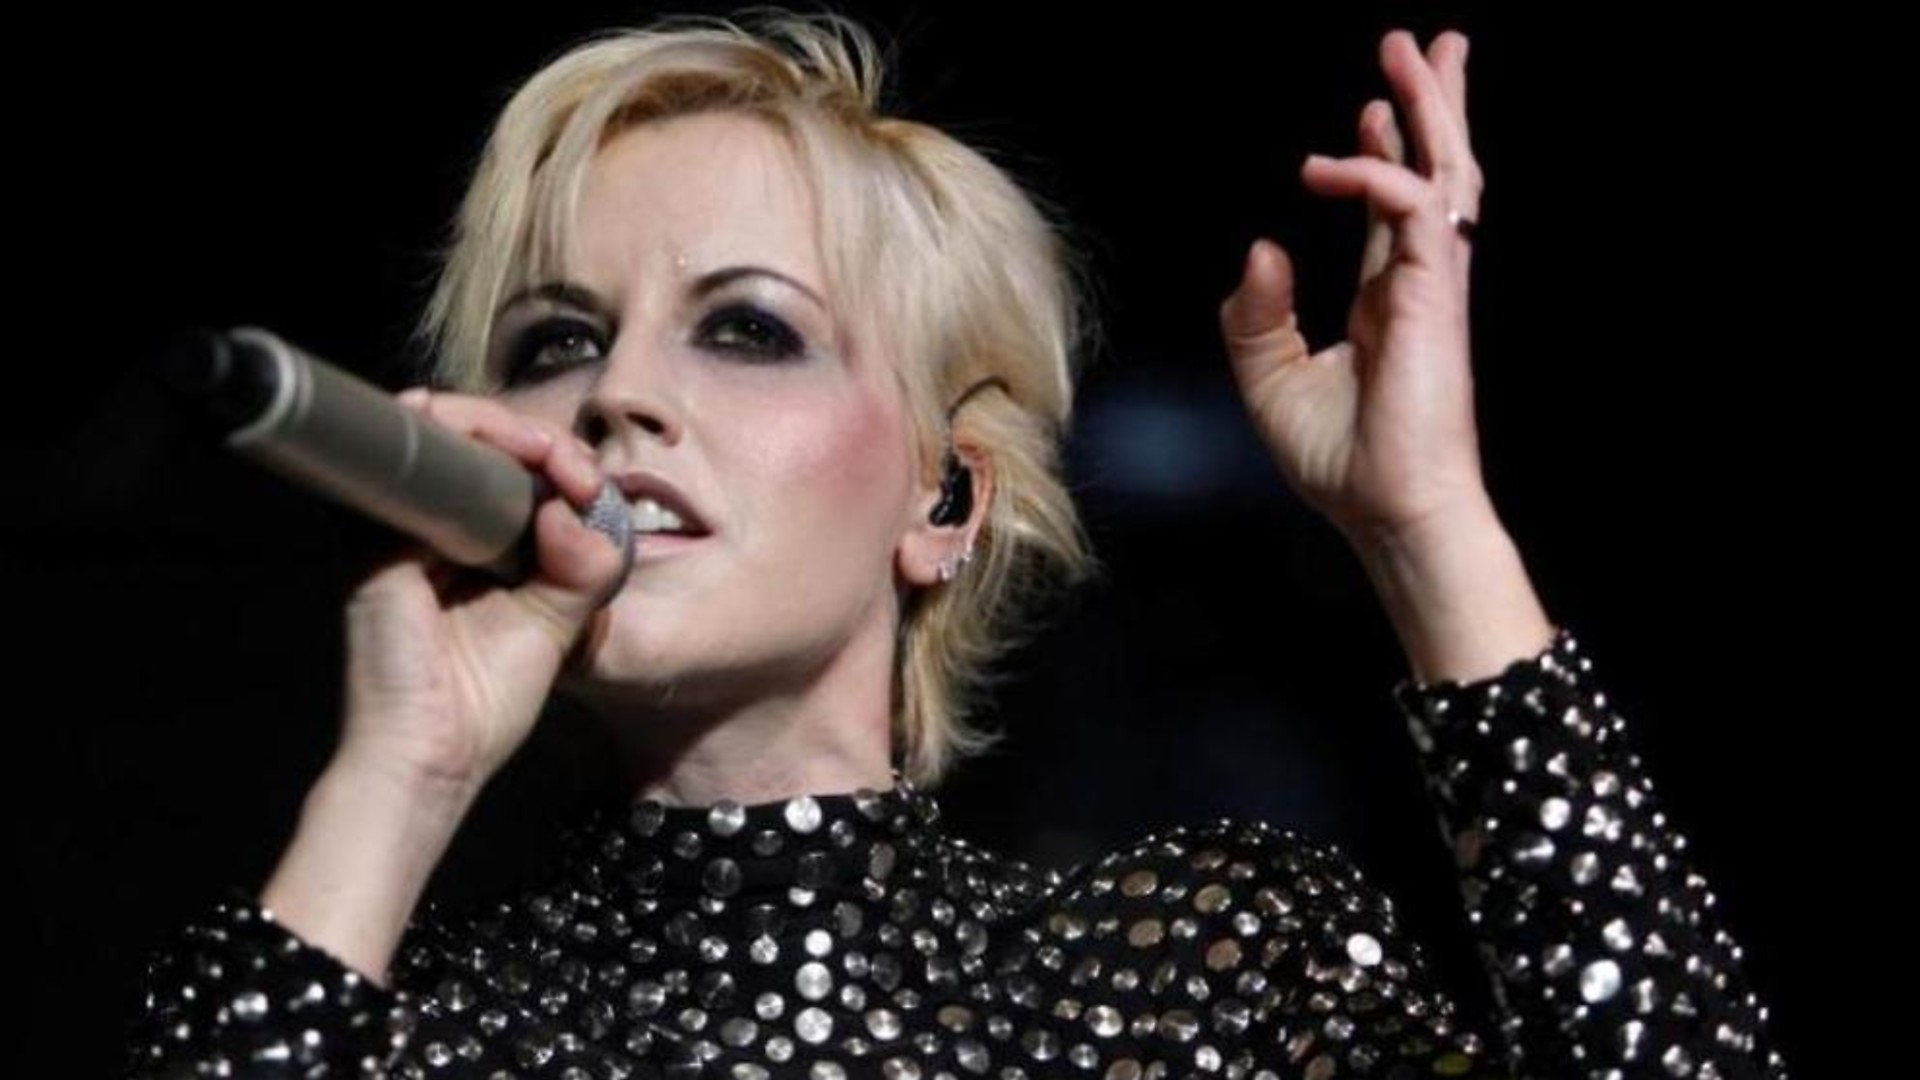 Dolores O'Riordan holding a mic in her right hand